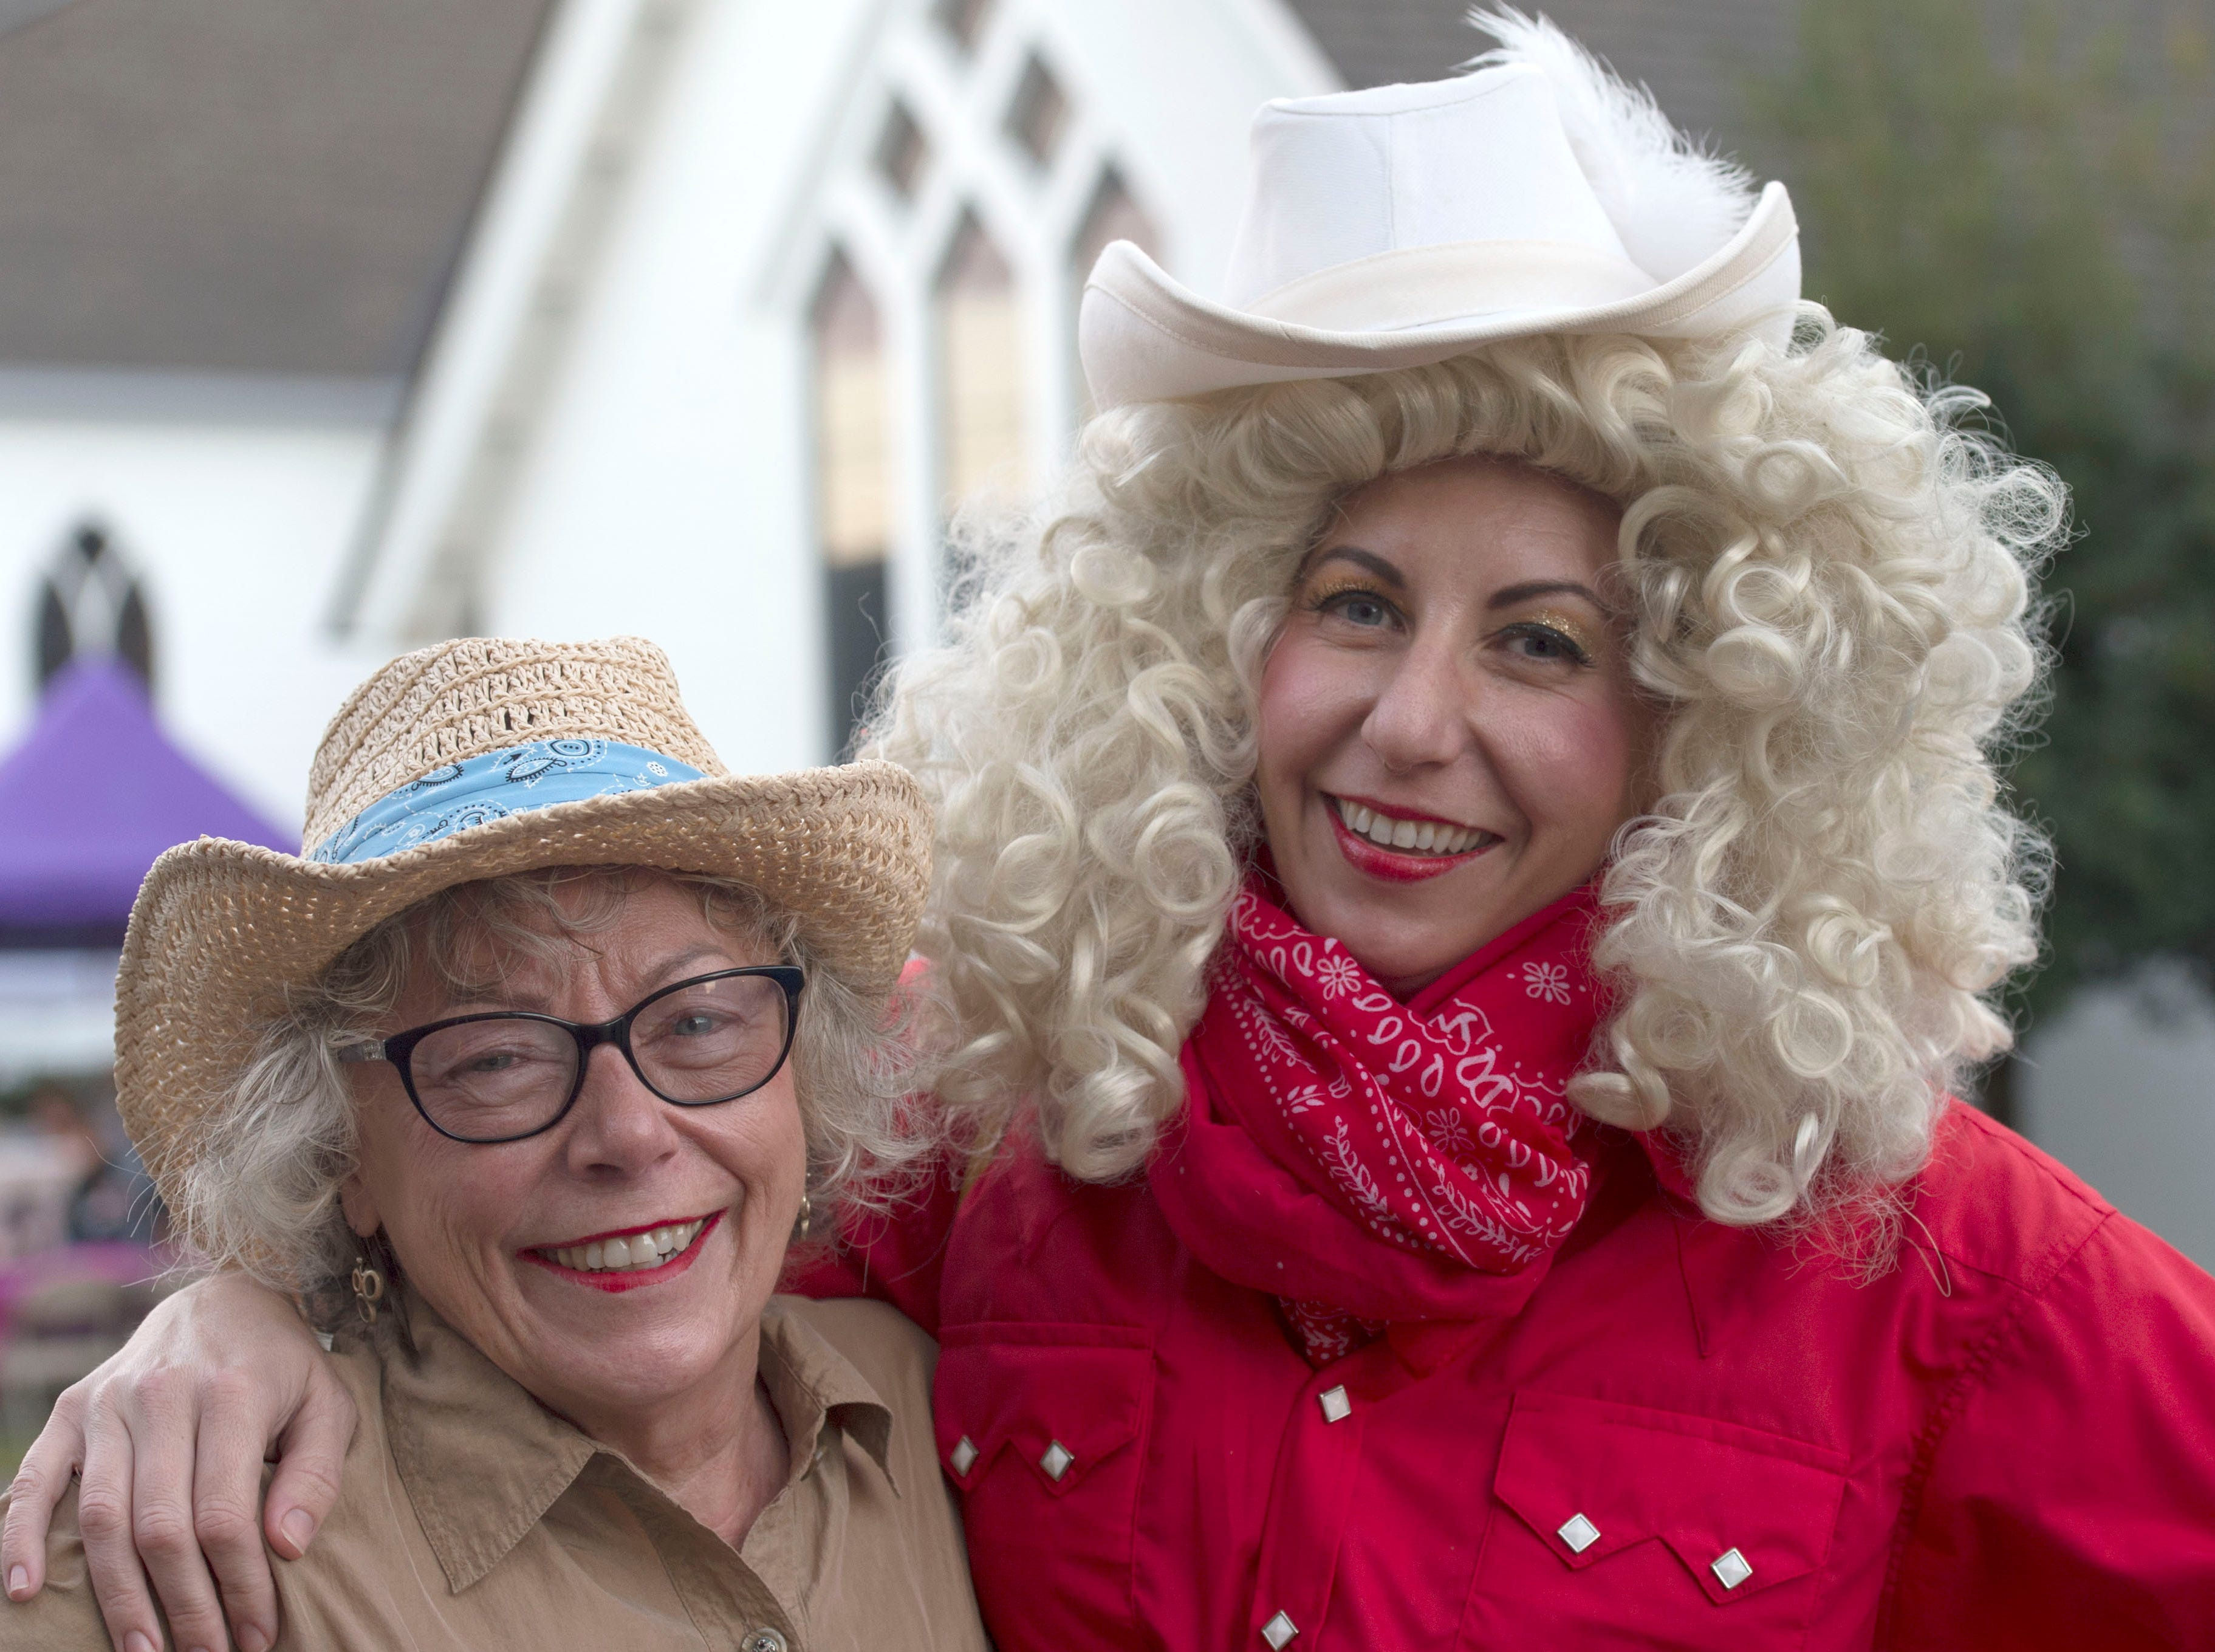 Judy Norris (left) and Kerry Maloney (right) mother-daughter Dolly Parton fans attend the 4th annual Dolly Should festival together in Bay St. Louis. Saturday, Jan. 12, 2019